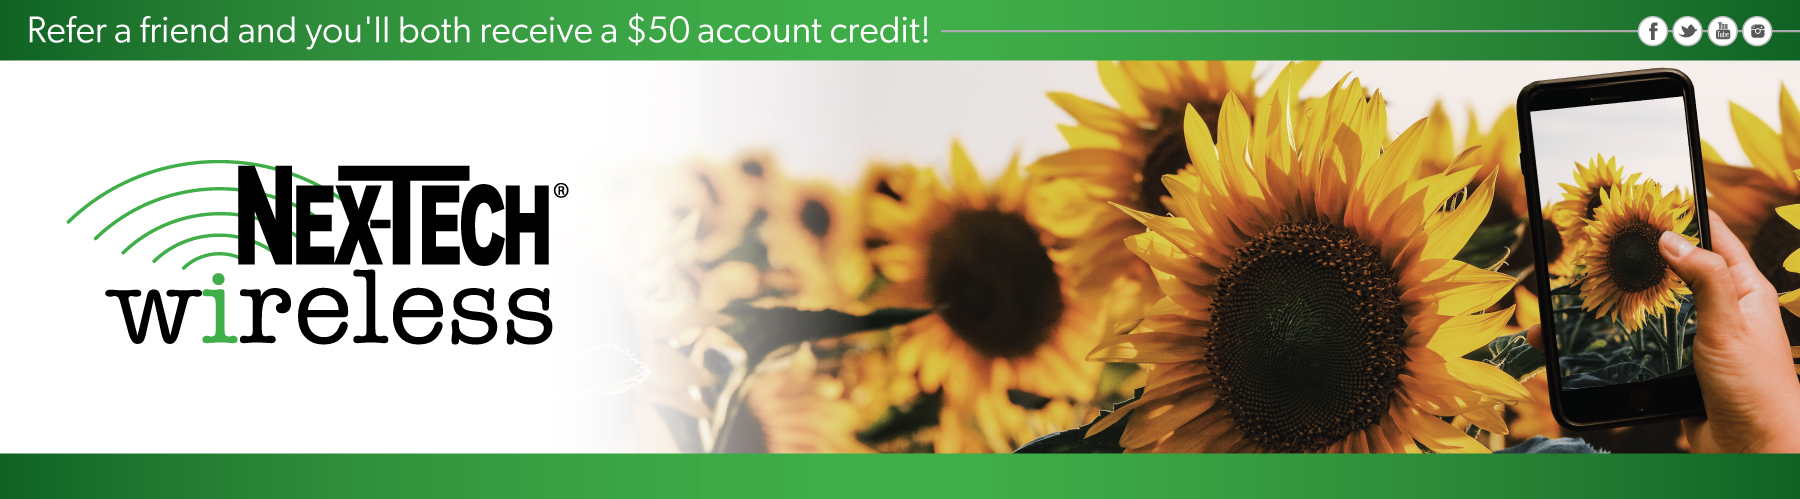 Refer a friend and you'll both receive a $50 account credit!